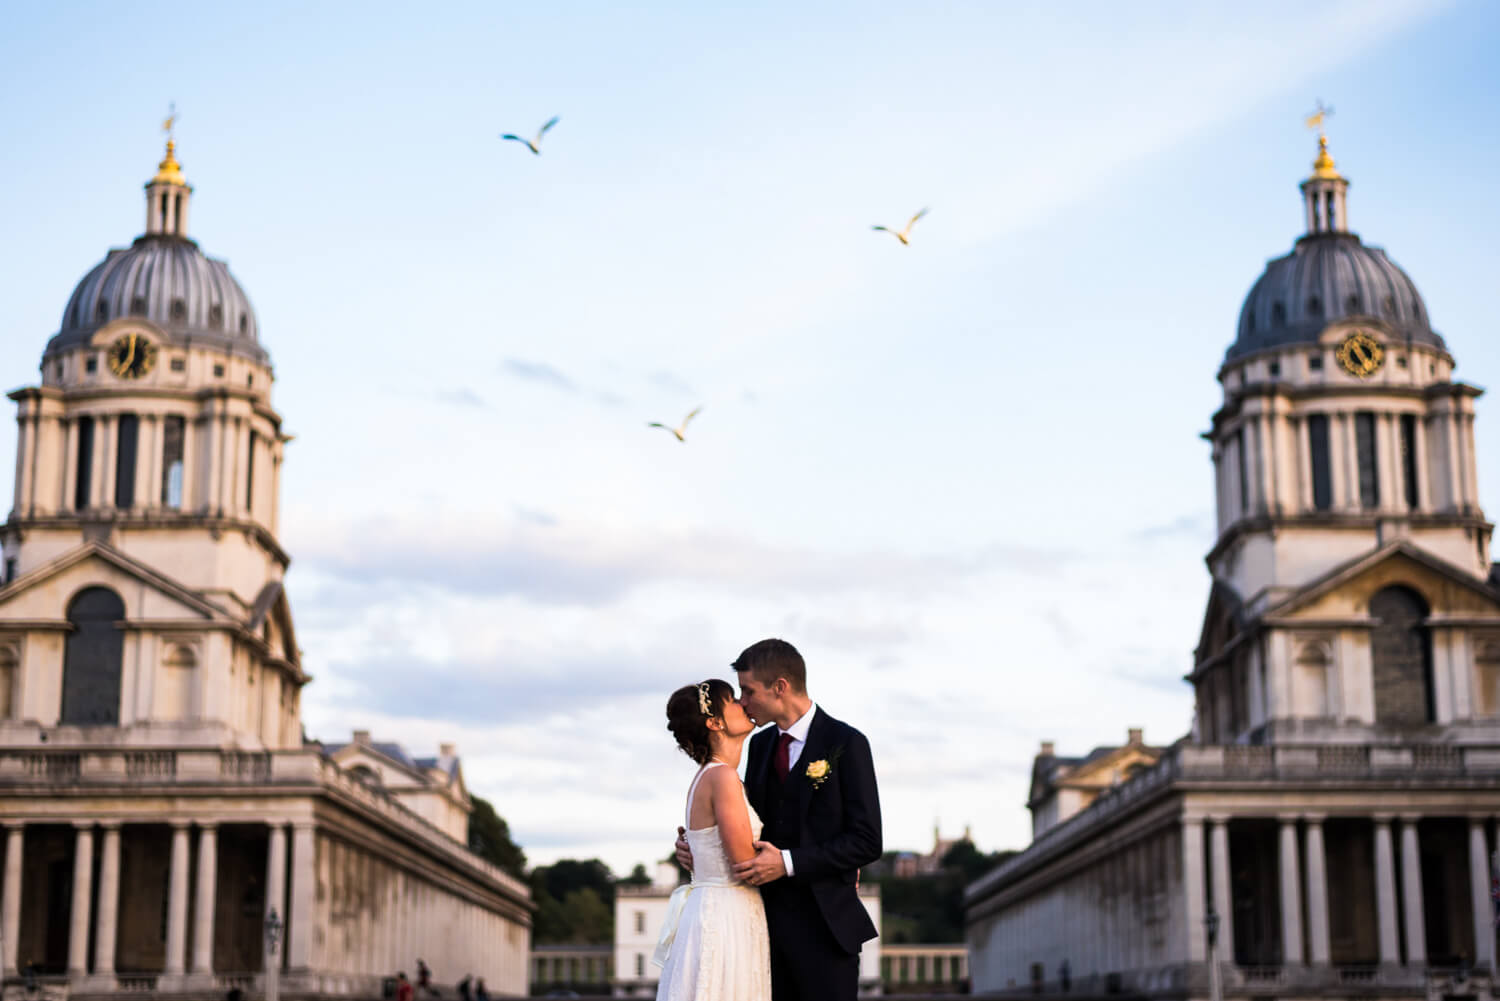 London_wedding_photographer, UK wedding photographer, London wedding photography, documentary wedding photographer